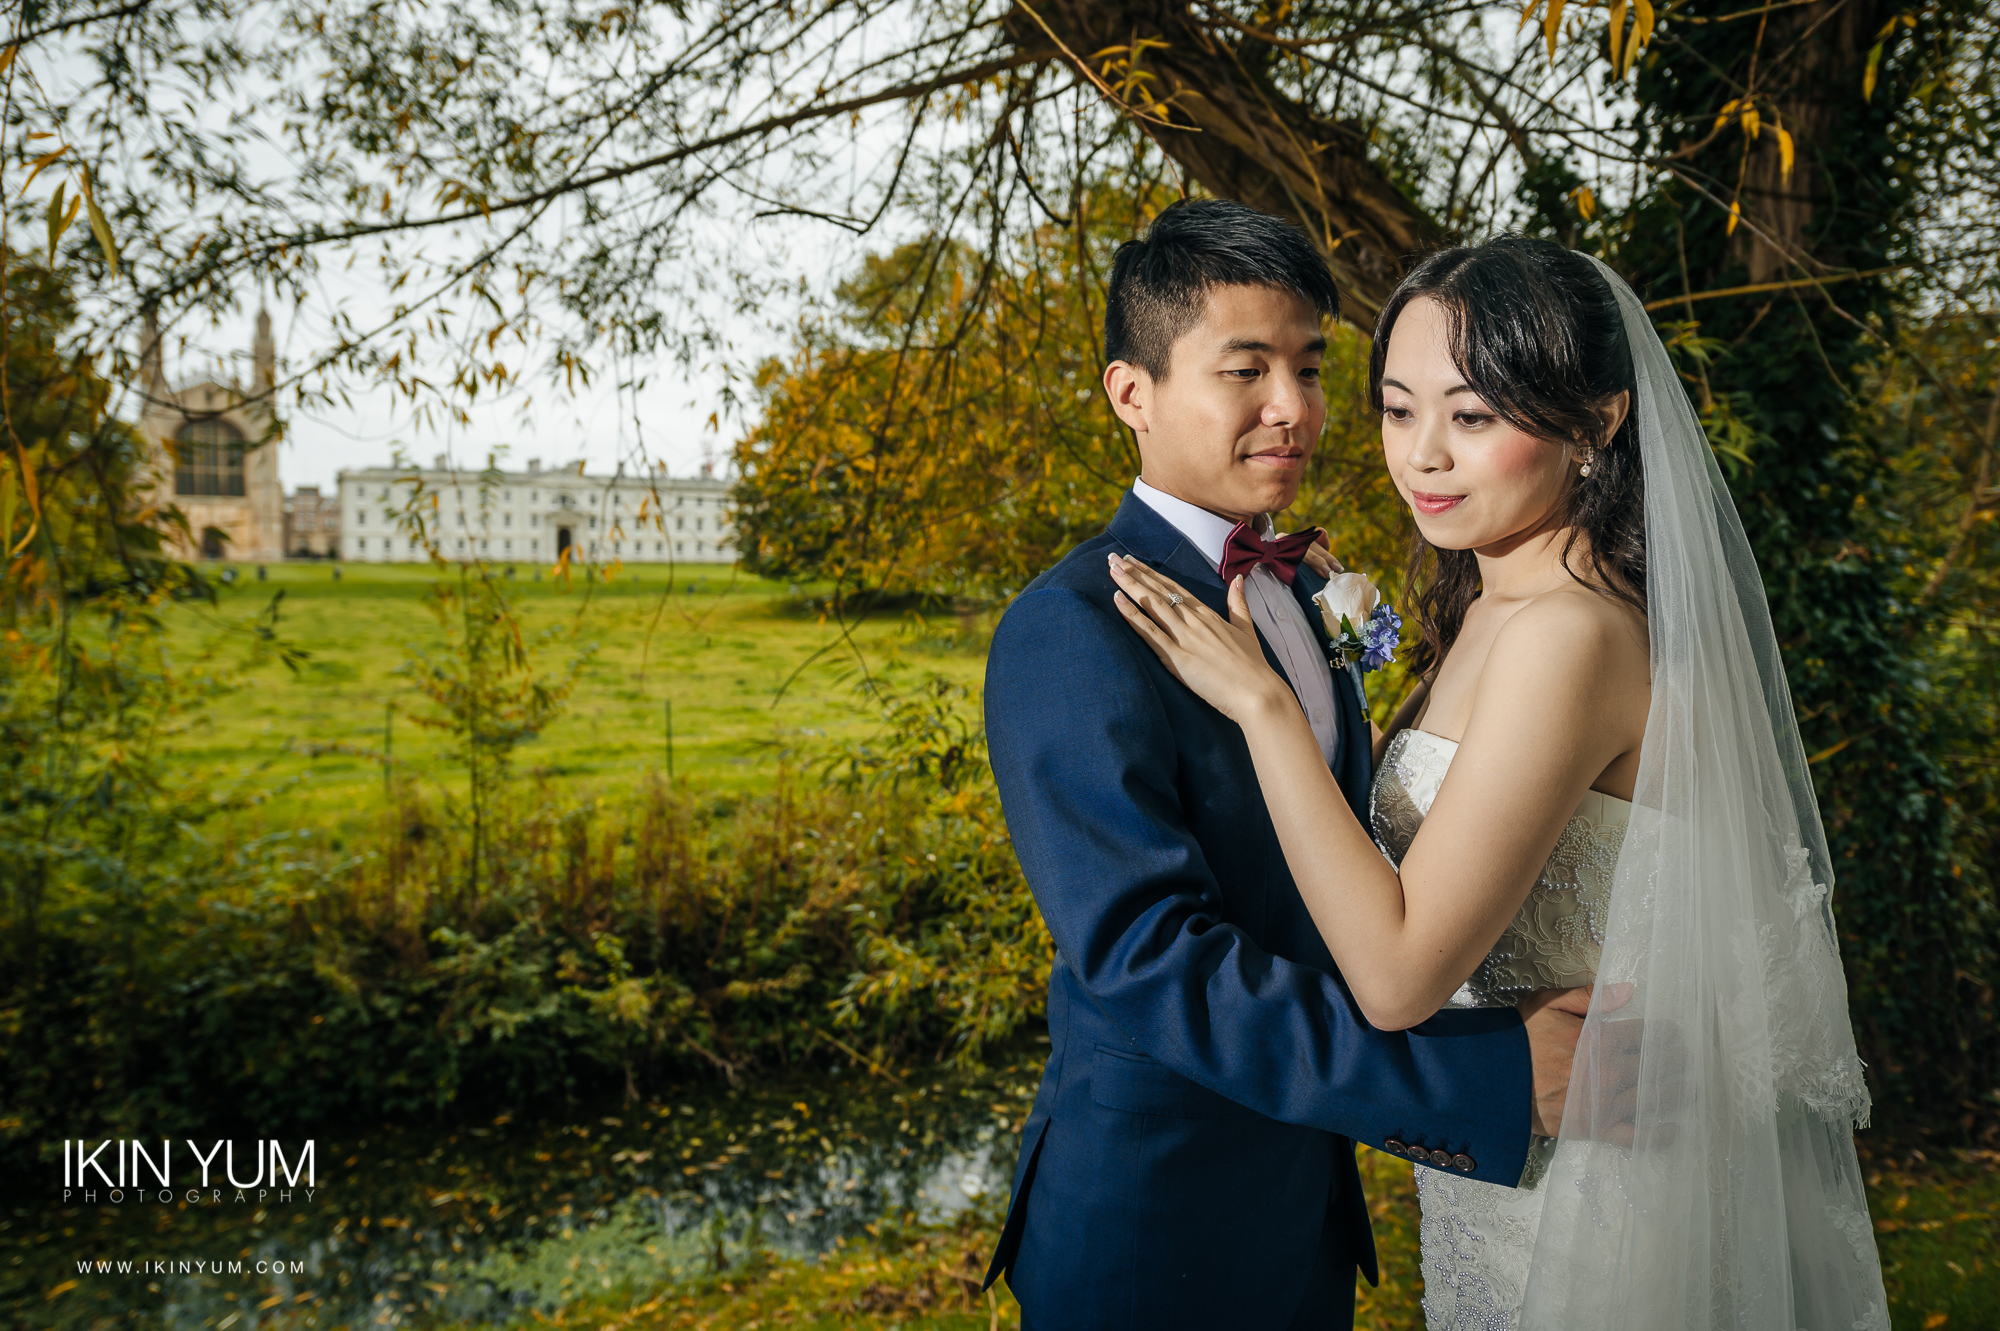 Chloe & Carlos Pre-Wedding Shoot- Ikin Yum Photography-0032.jpg